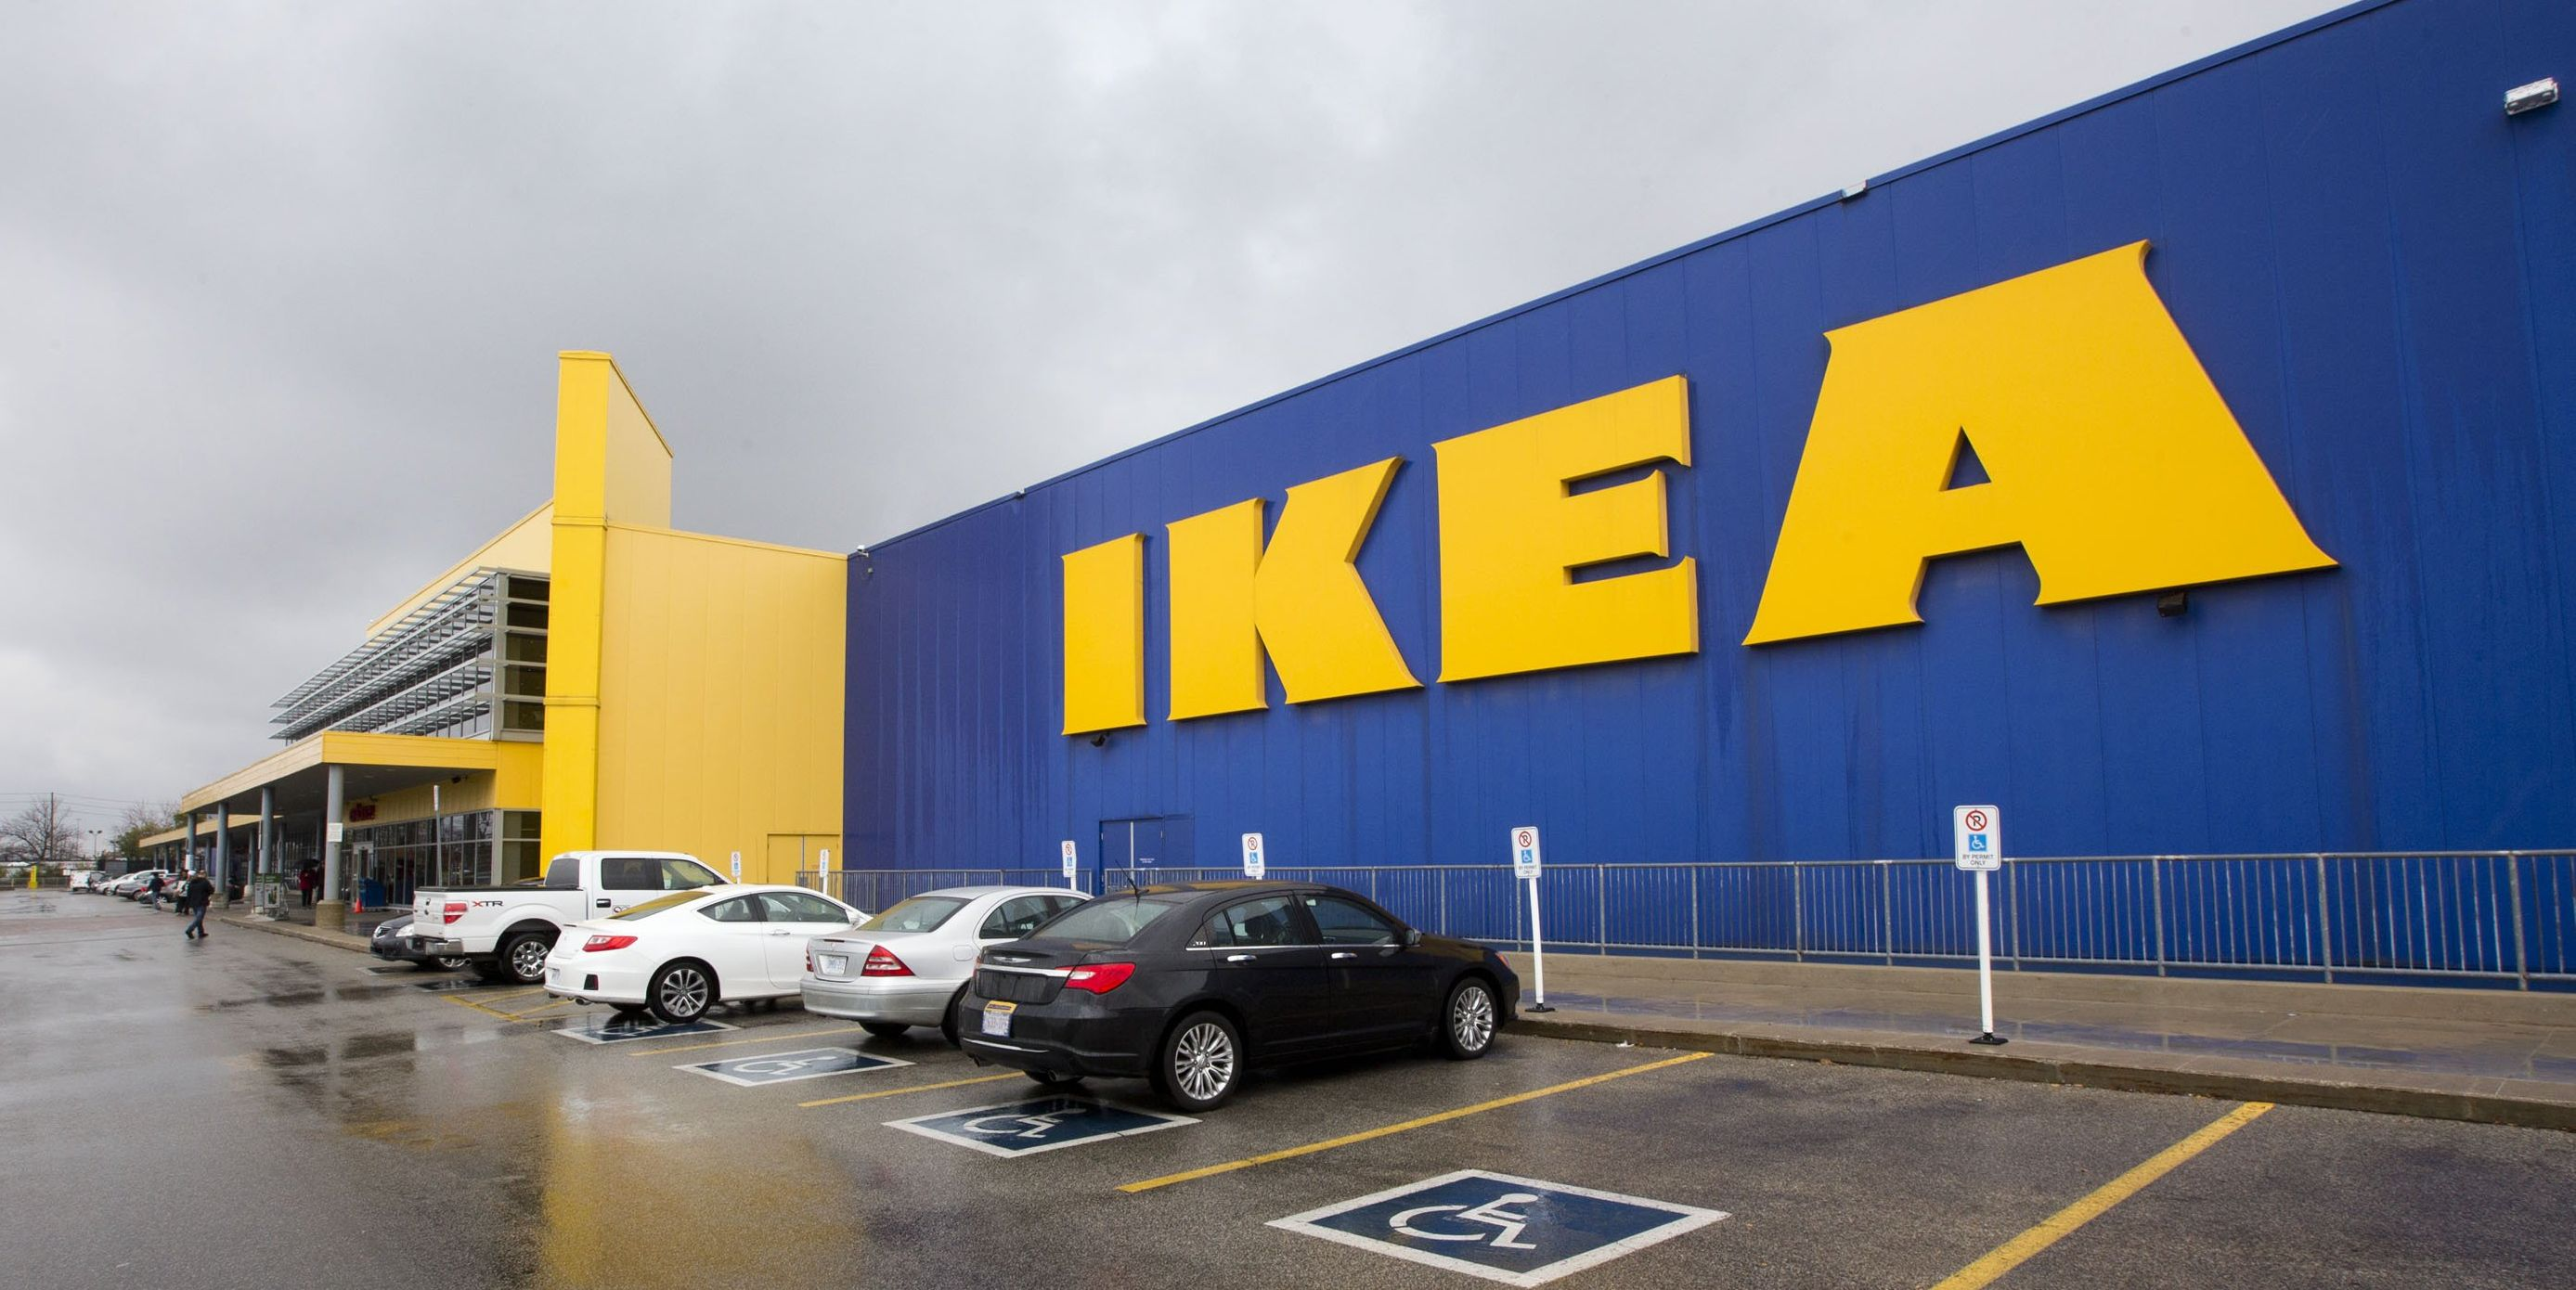 boy sleeps in ikea for a week after running away from home